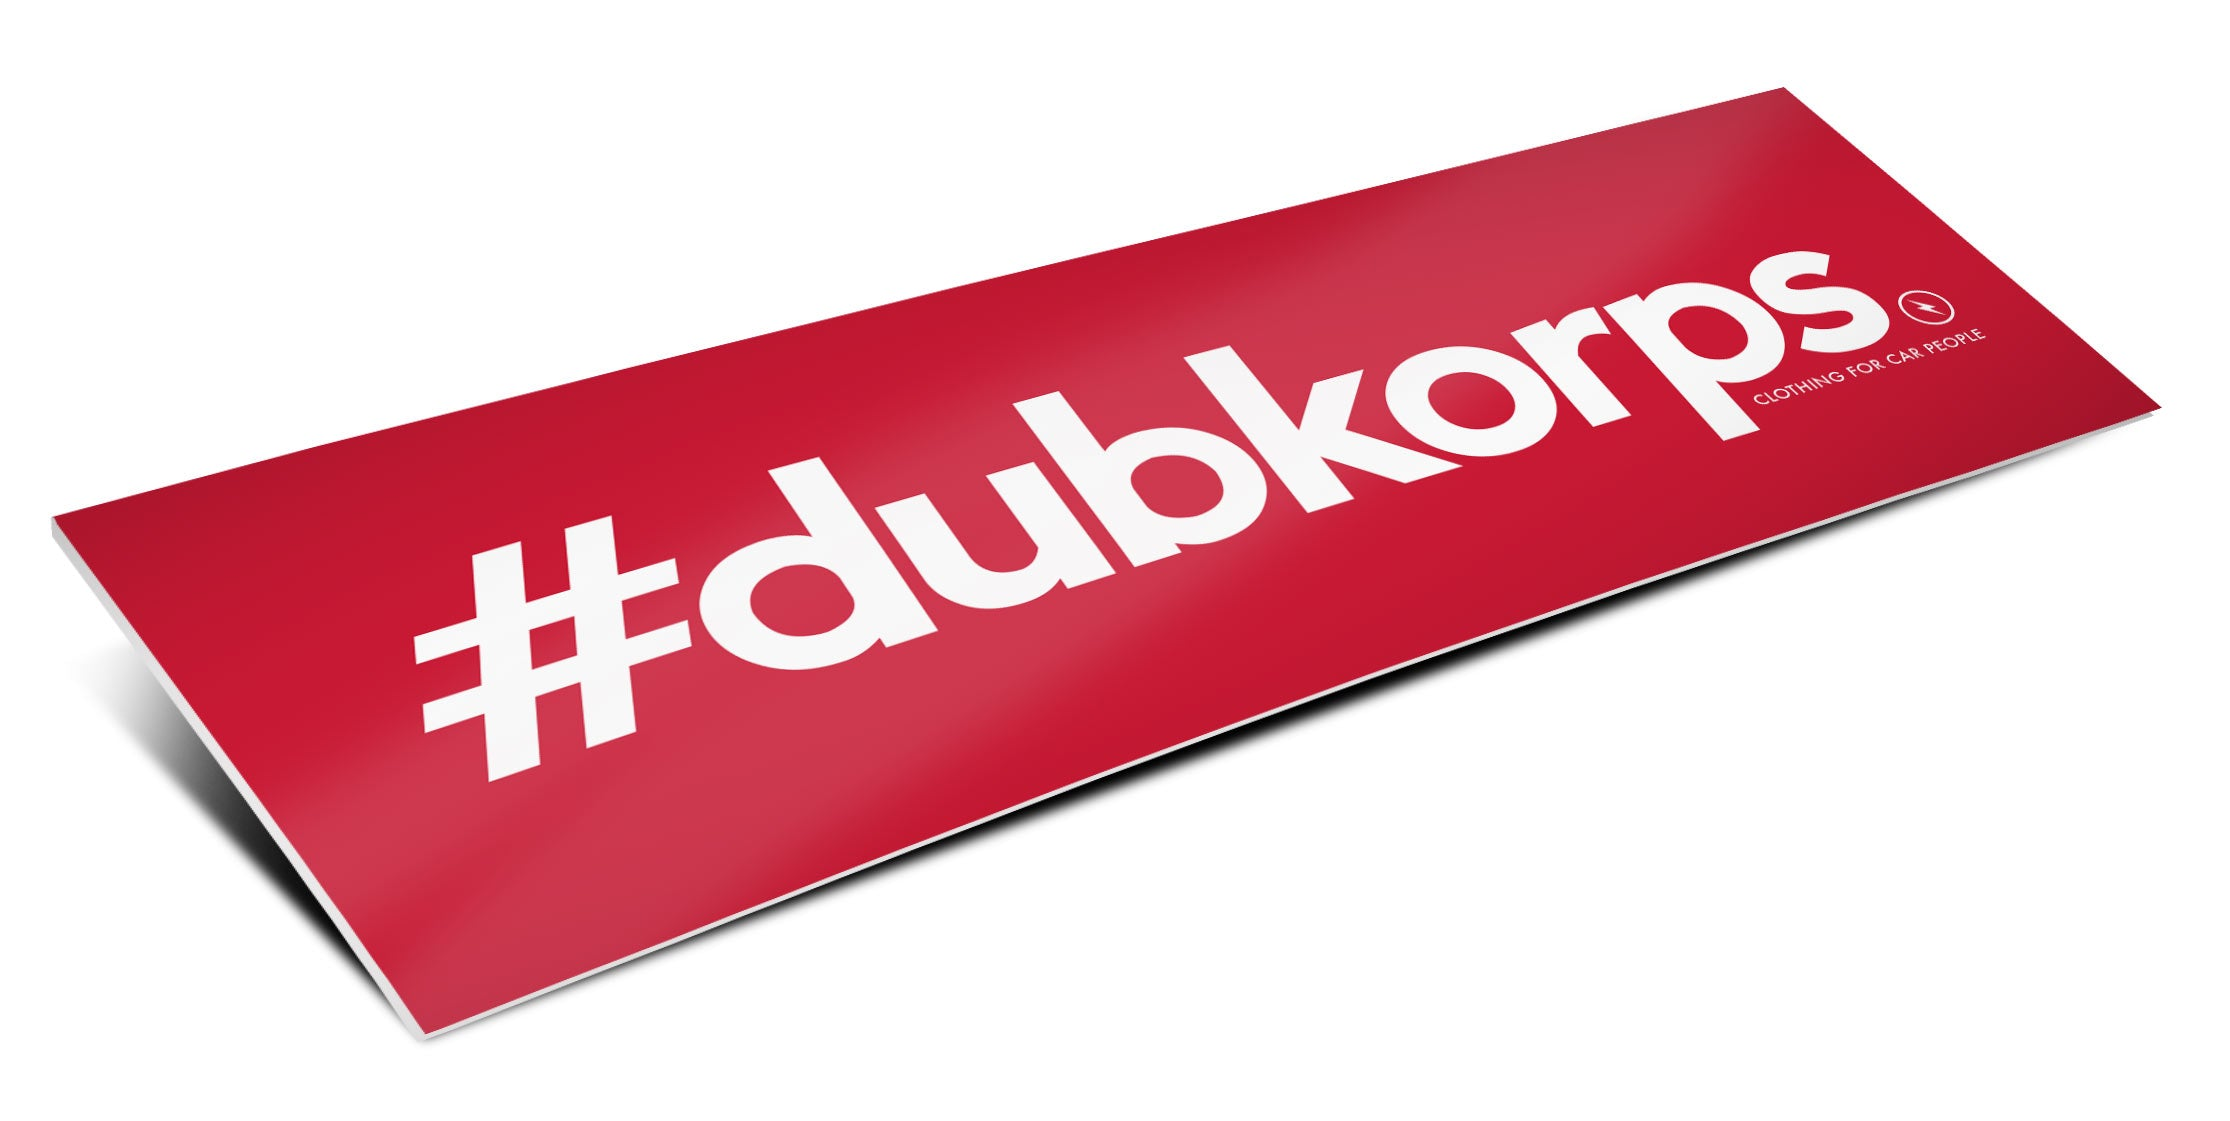 Welcome to Dubkorps.